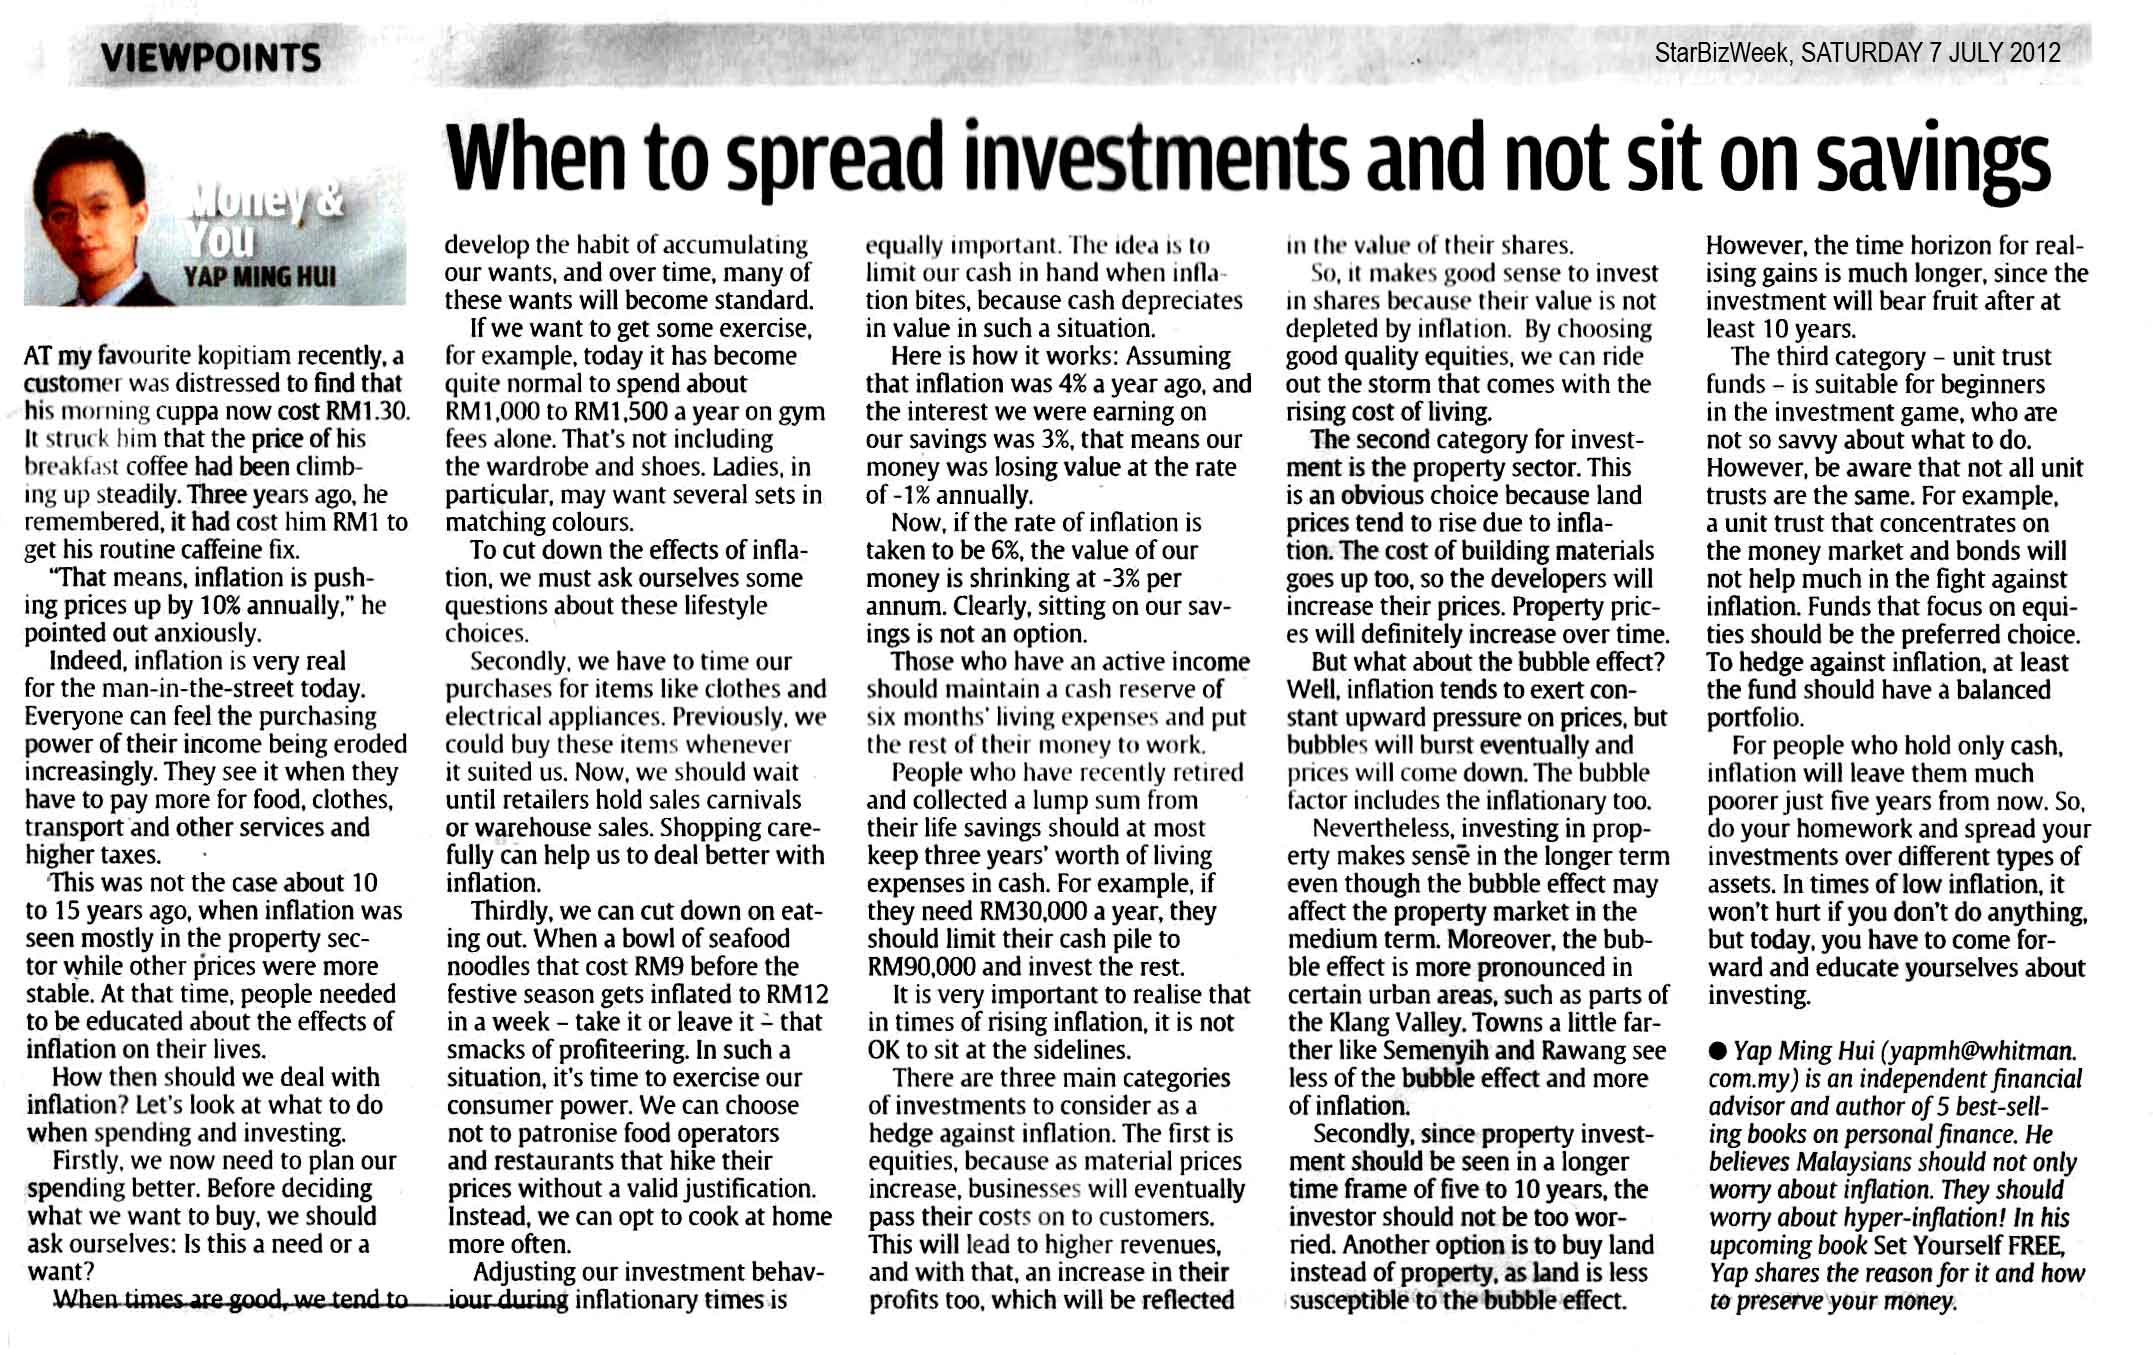 When to spread investments and not sit on savings - 07 Jul 2012